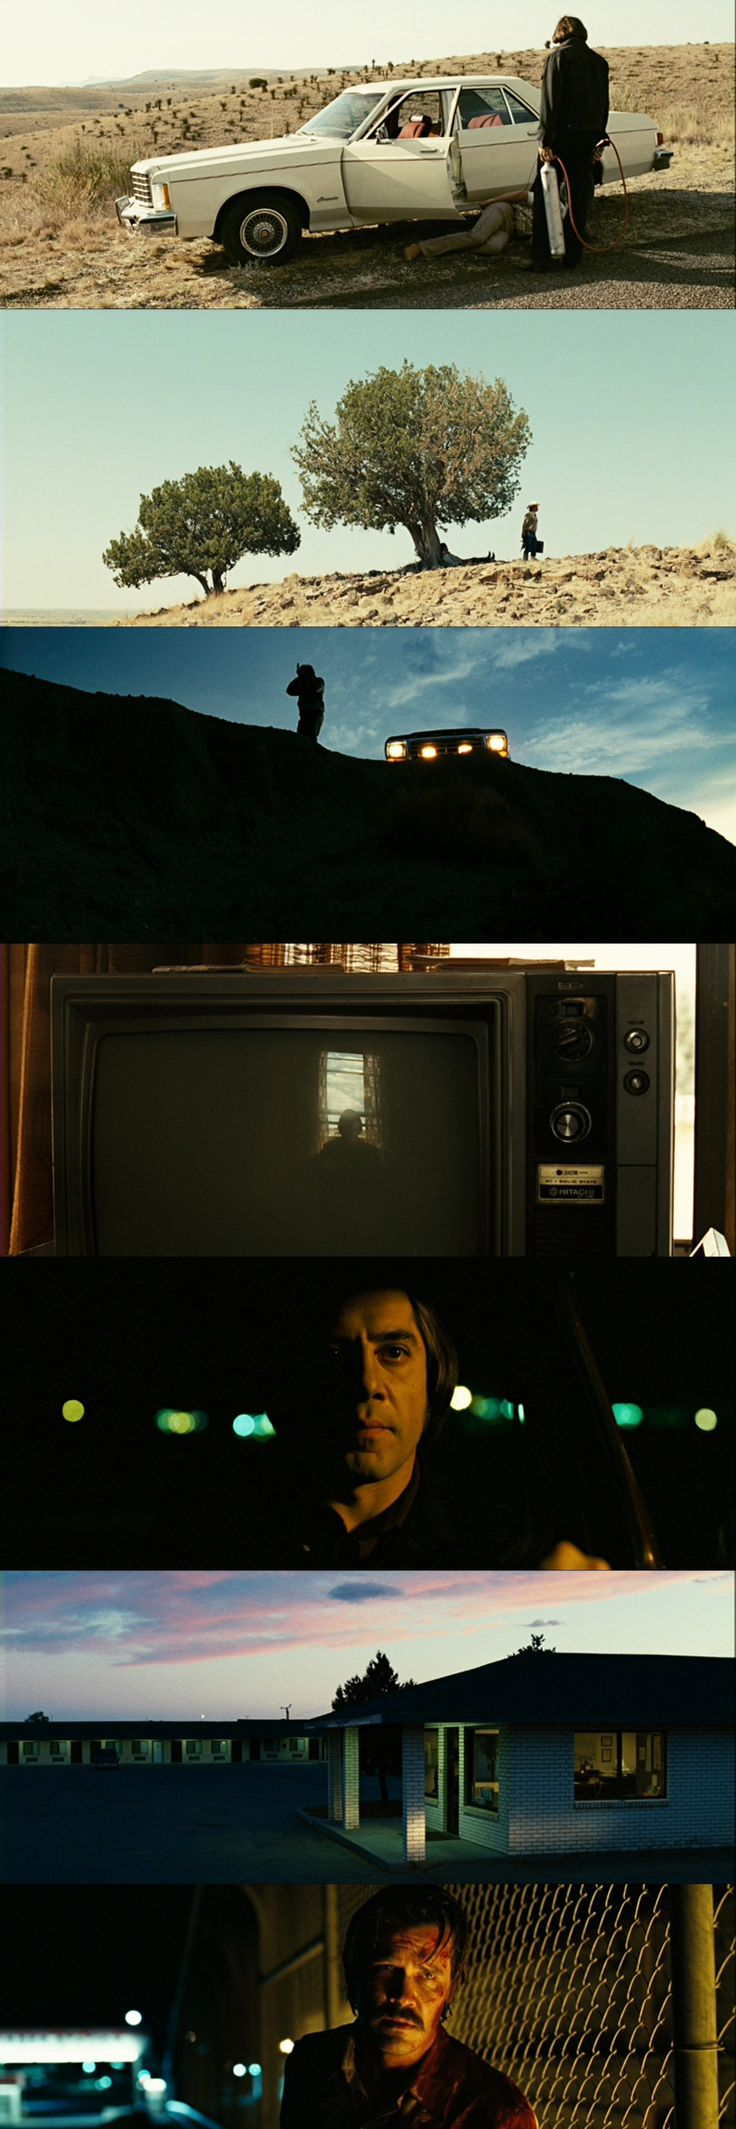 best ideas about old men old women portraits no country for old men cinematography by roger deakins directed by ethan coen